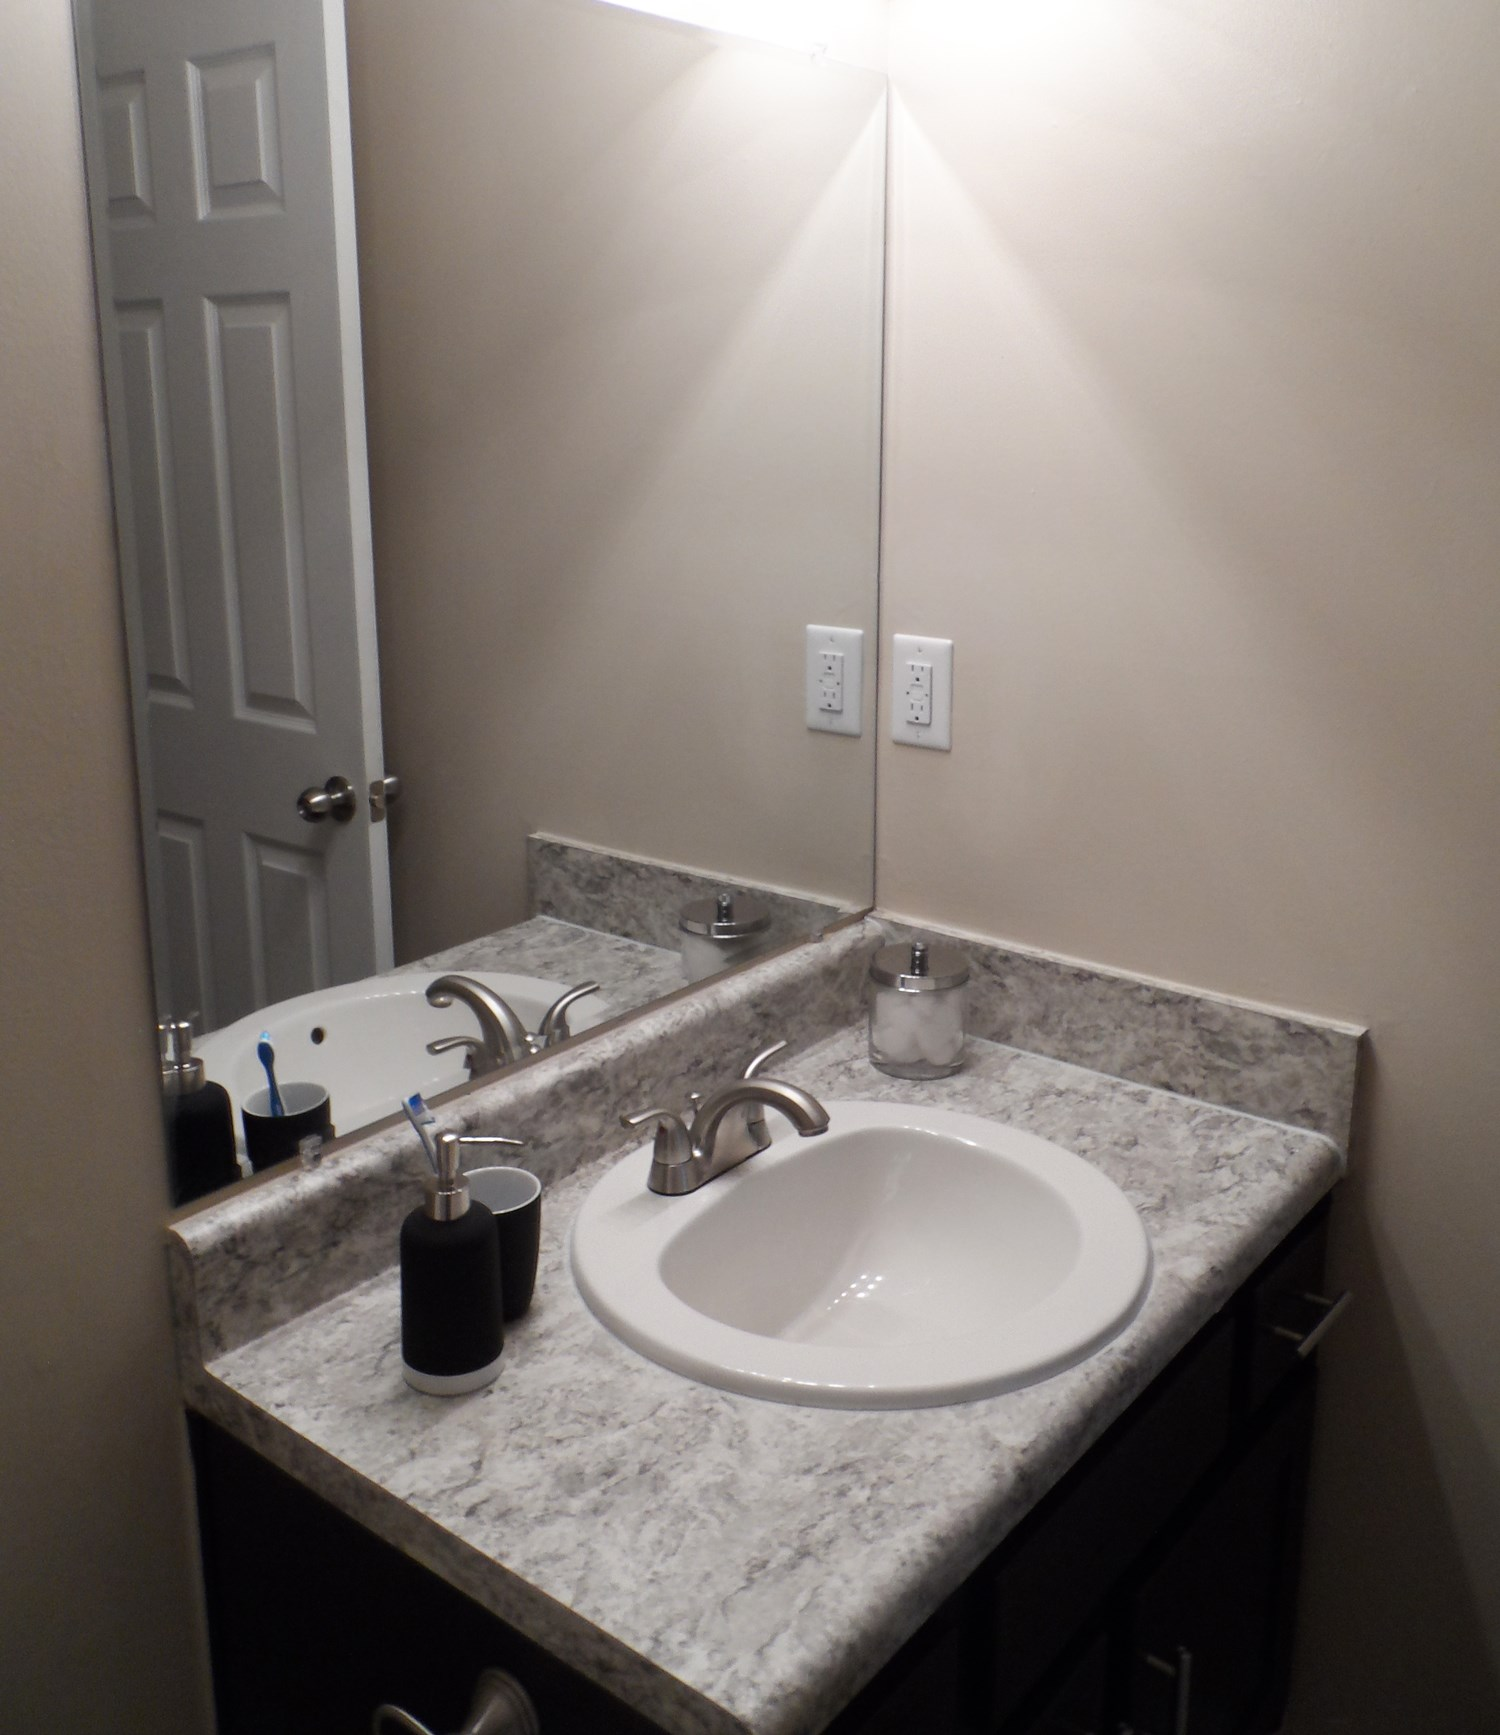 Bathroom at Amberwood at Lochmere Apartments in Cary, NC